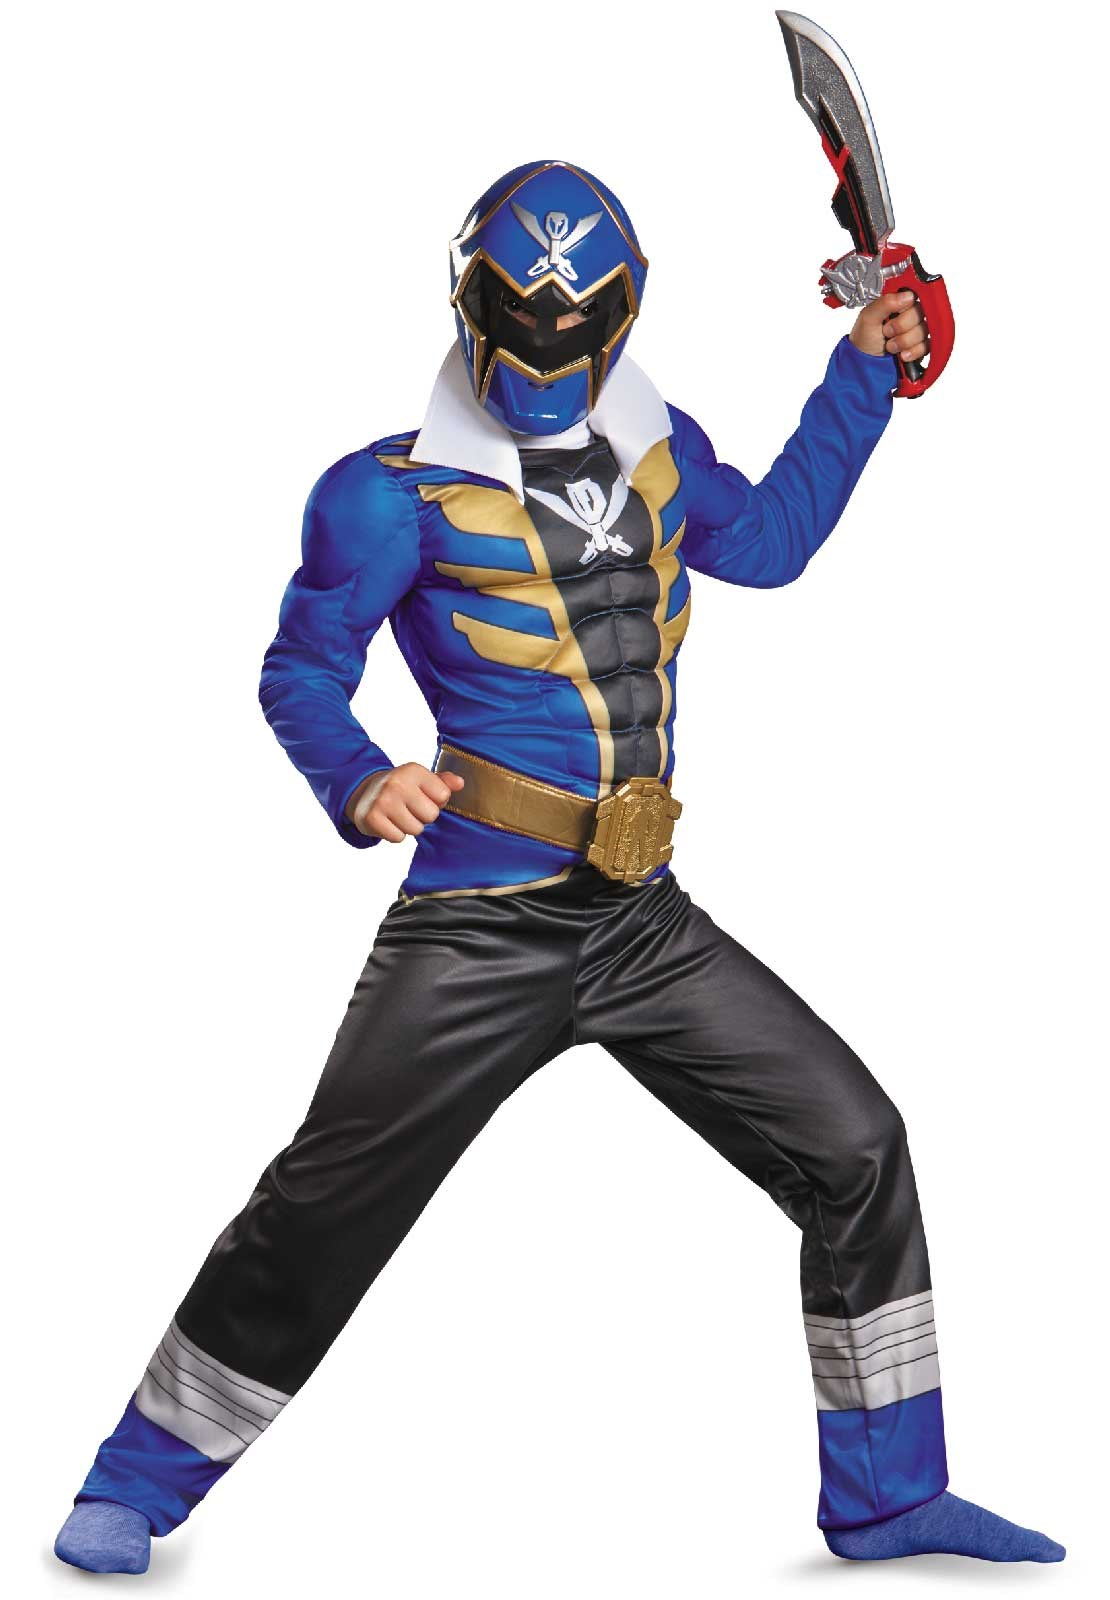 Power Ranger Super Megaforce Blue Ranger Muscle Child Costume Large (10-12)